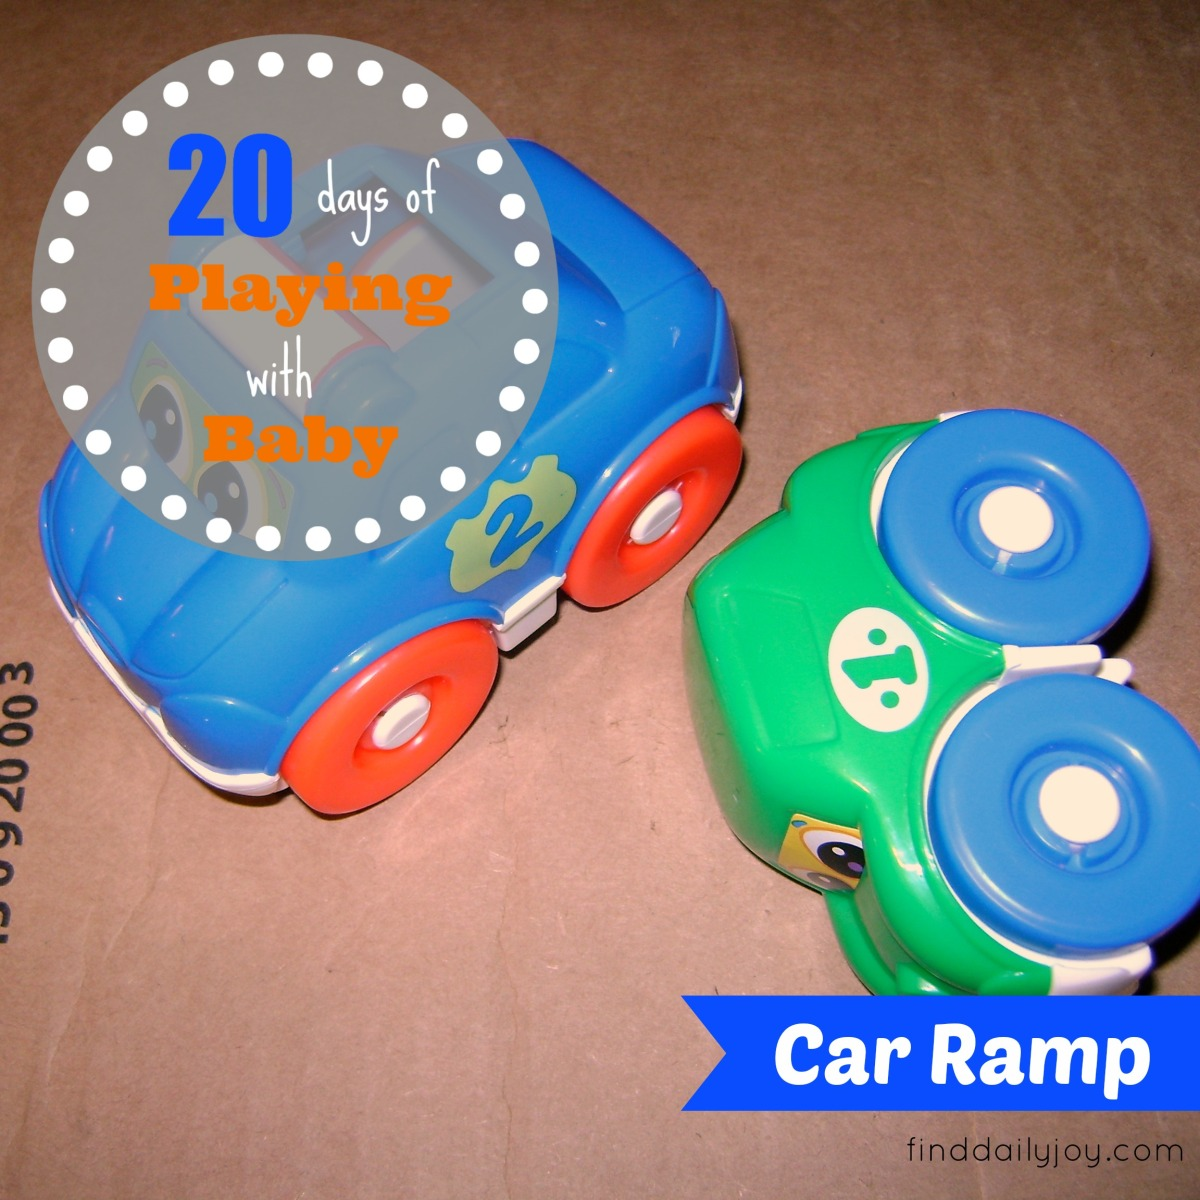 Car Ramp {Playing With Baby, Day 4}